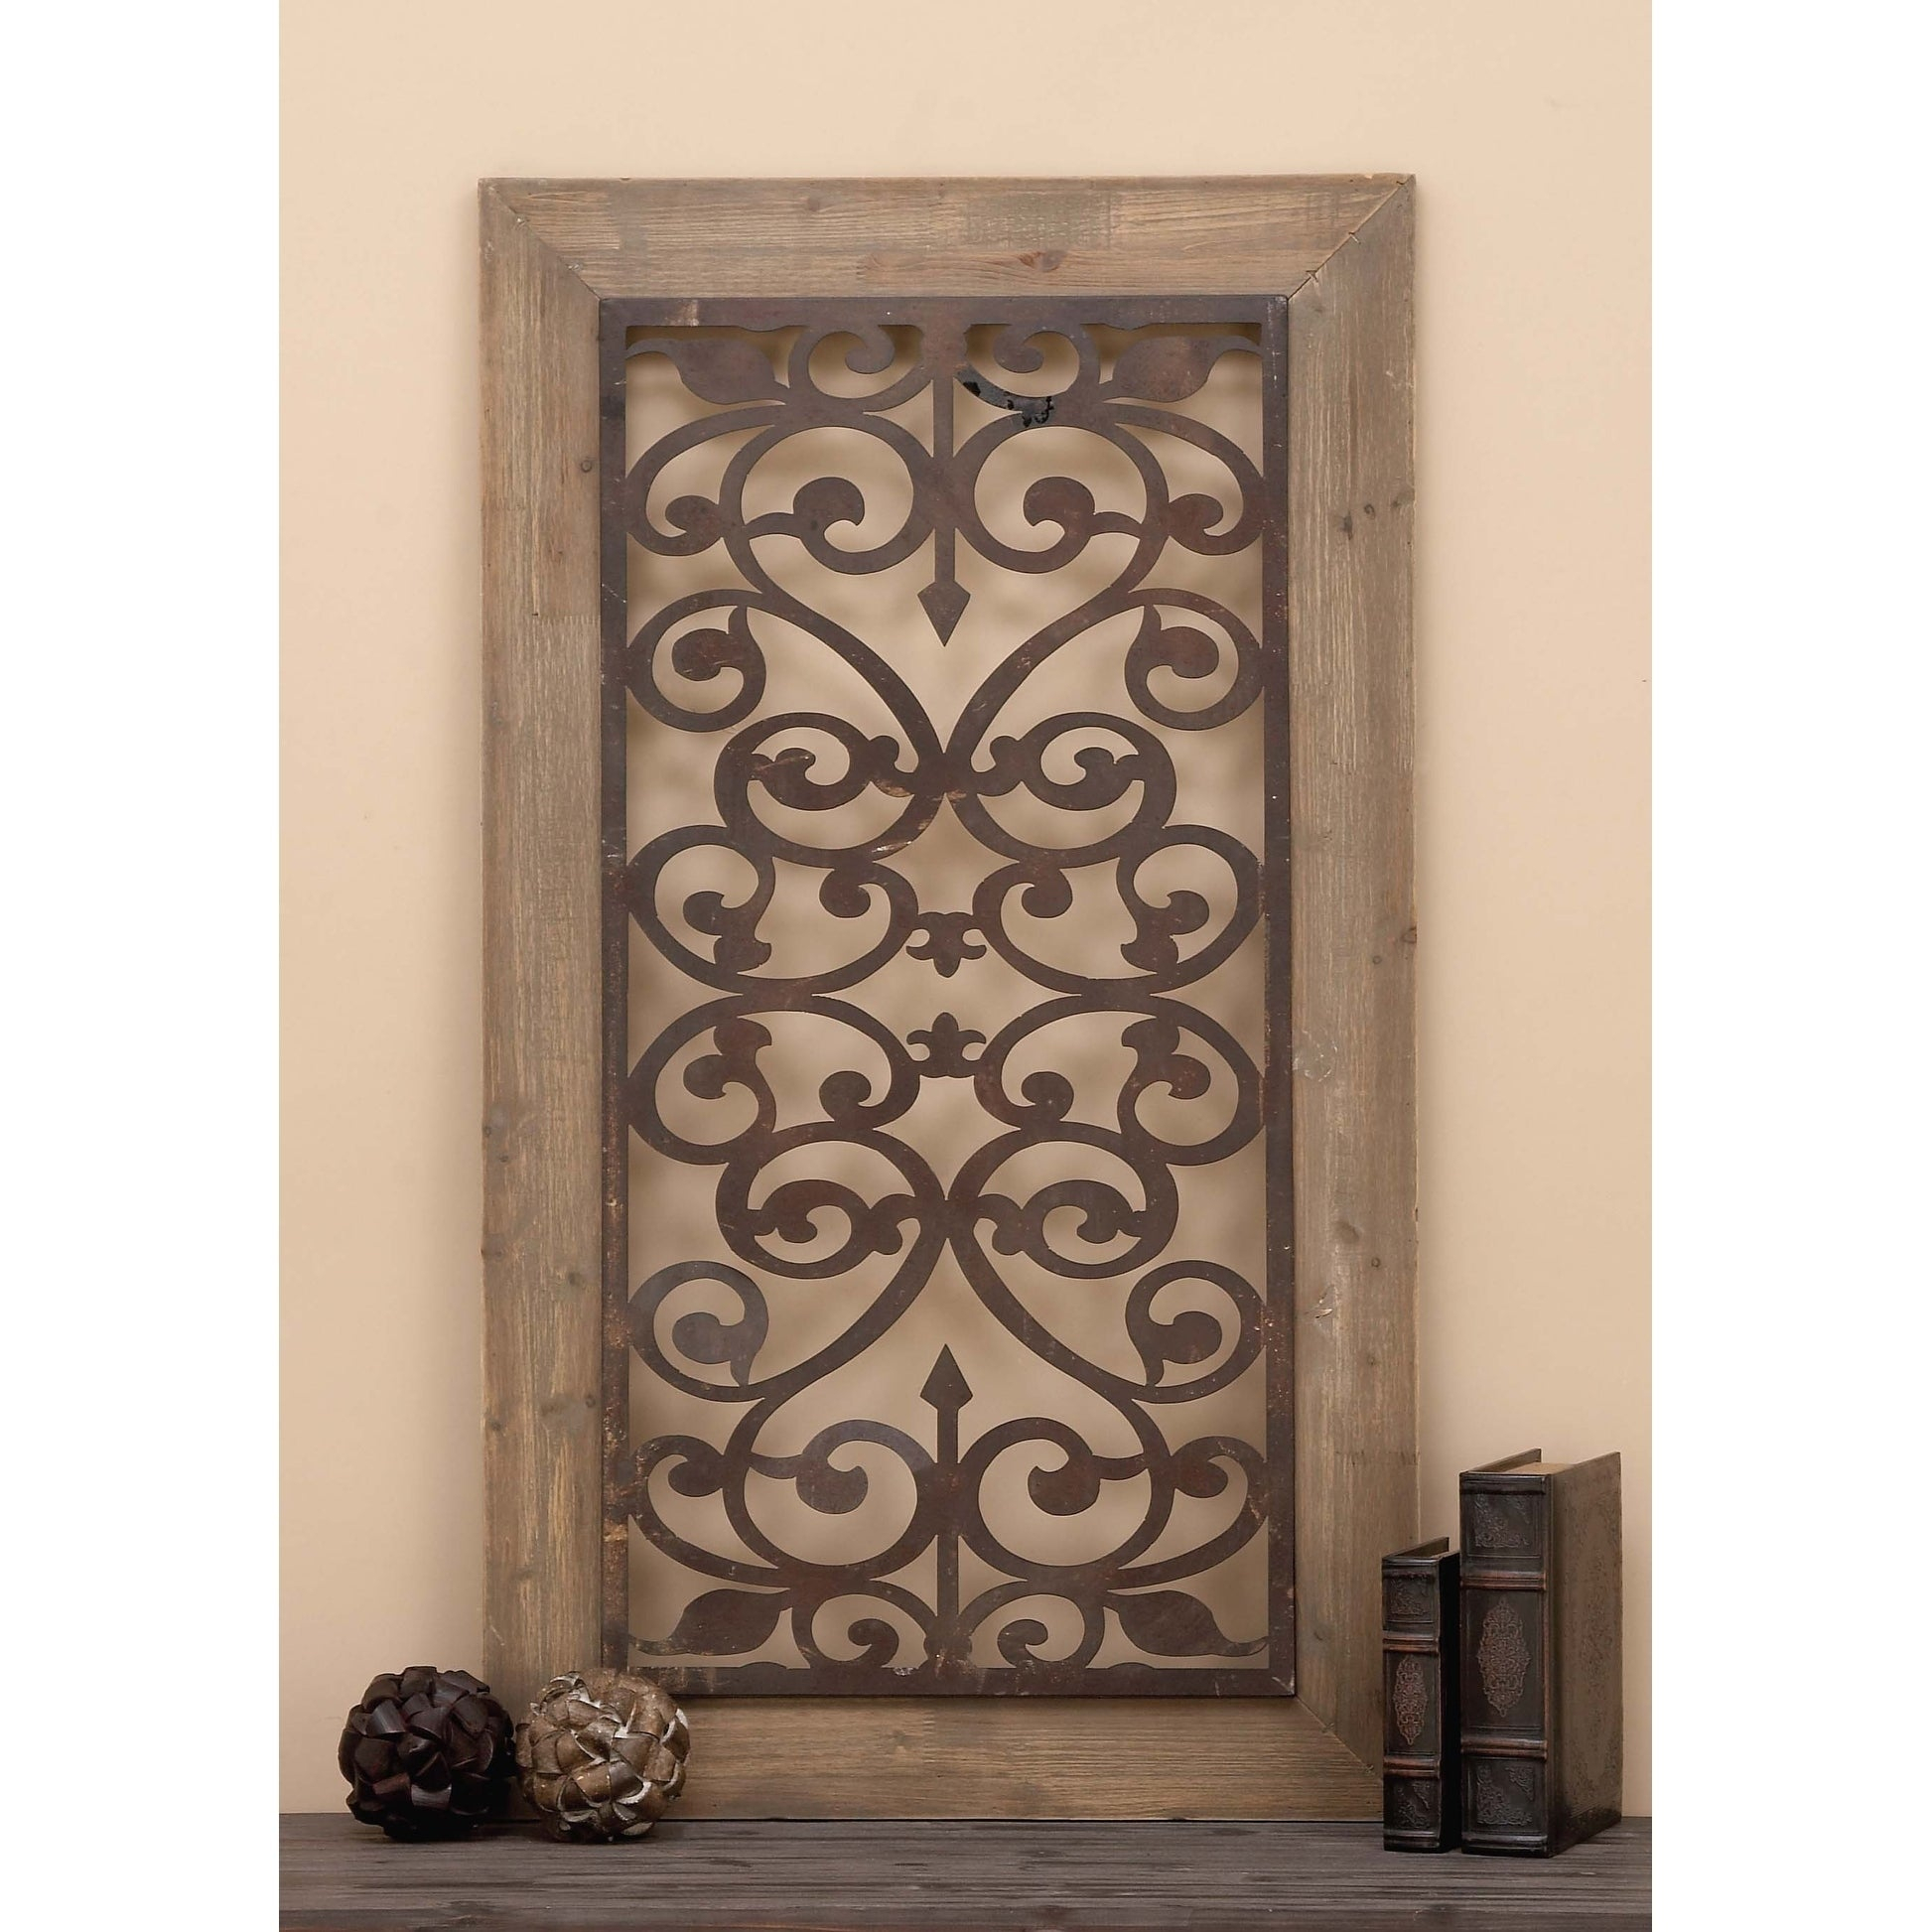 "Rings Wall Decor By Wrought Studio Throughout Popular Shop 26"" X 46"" Distressed Wood & Brown Metal Wall Art Panel W (View 15 of 20)"